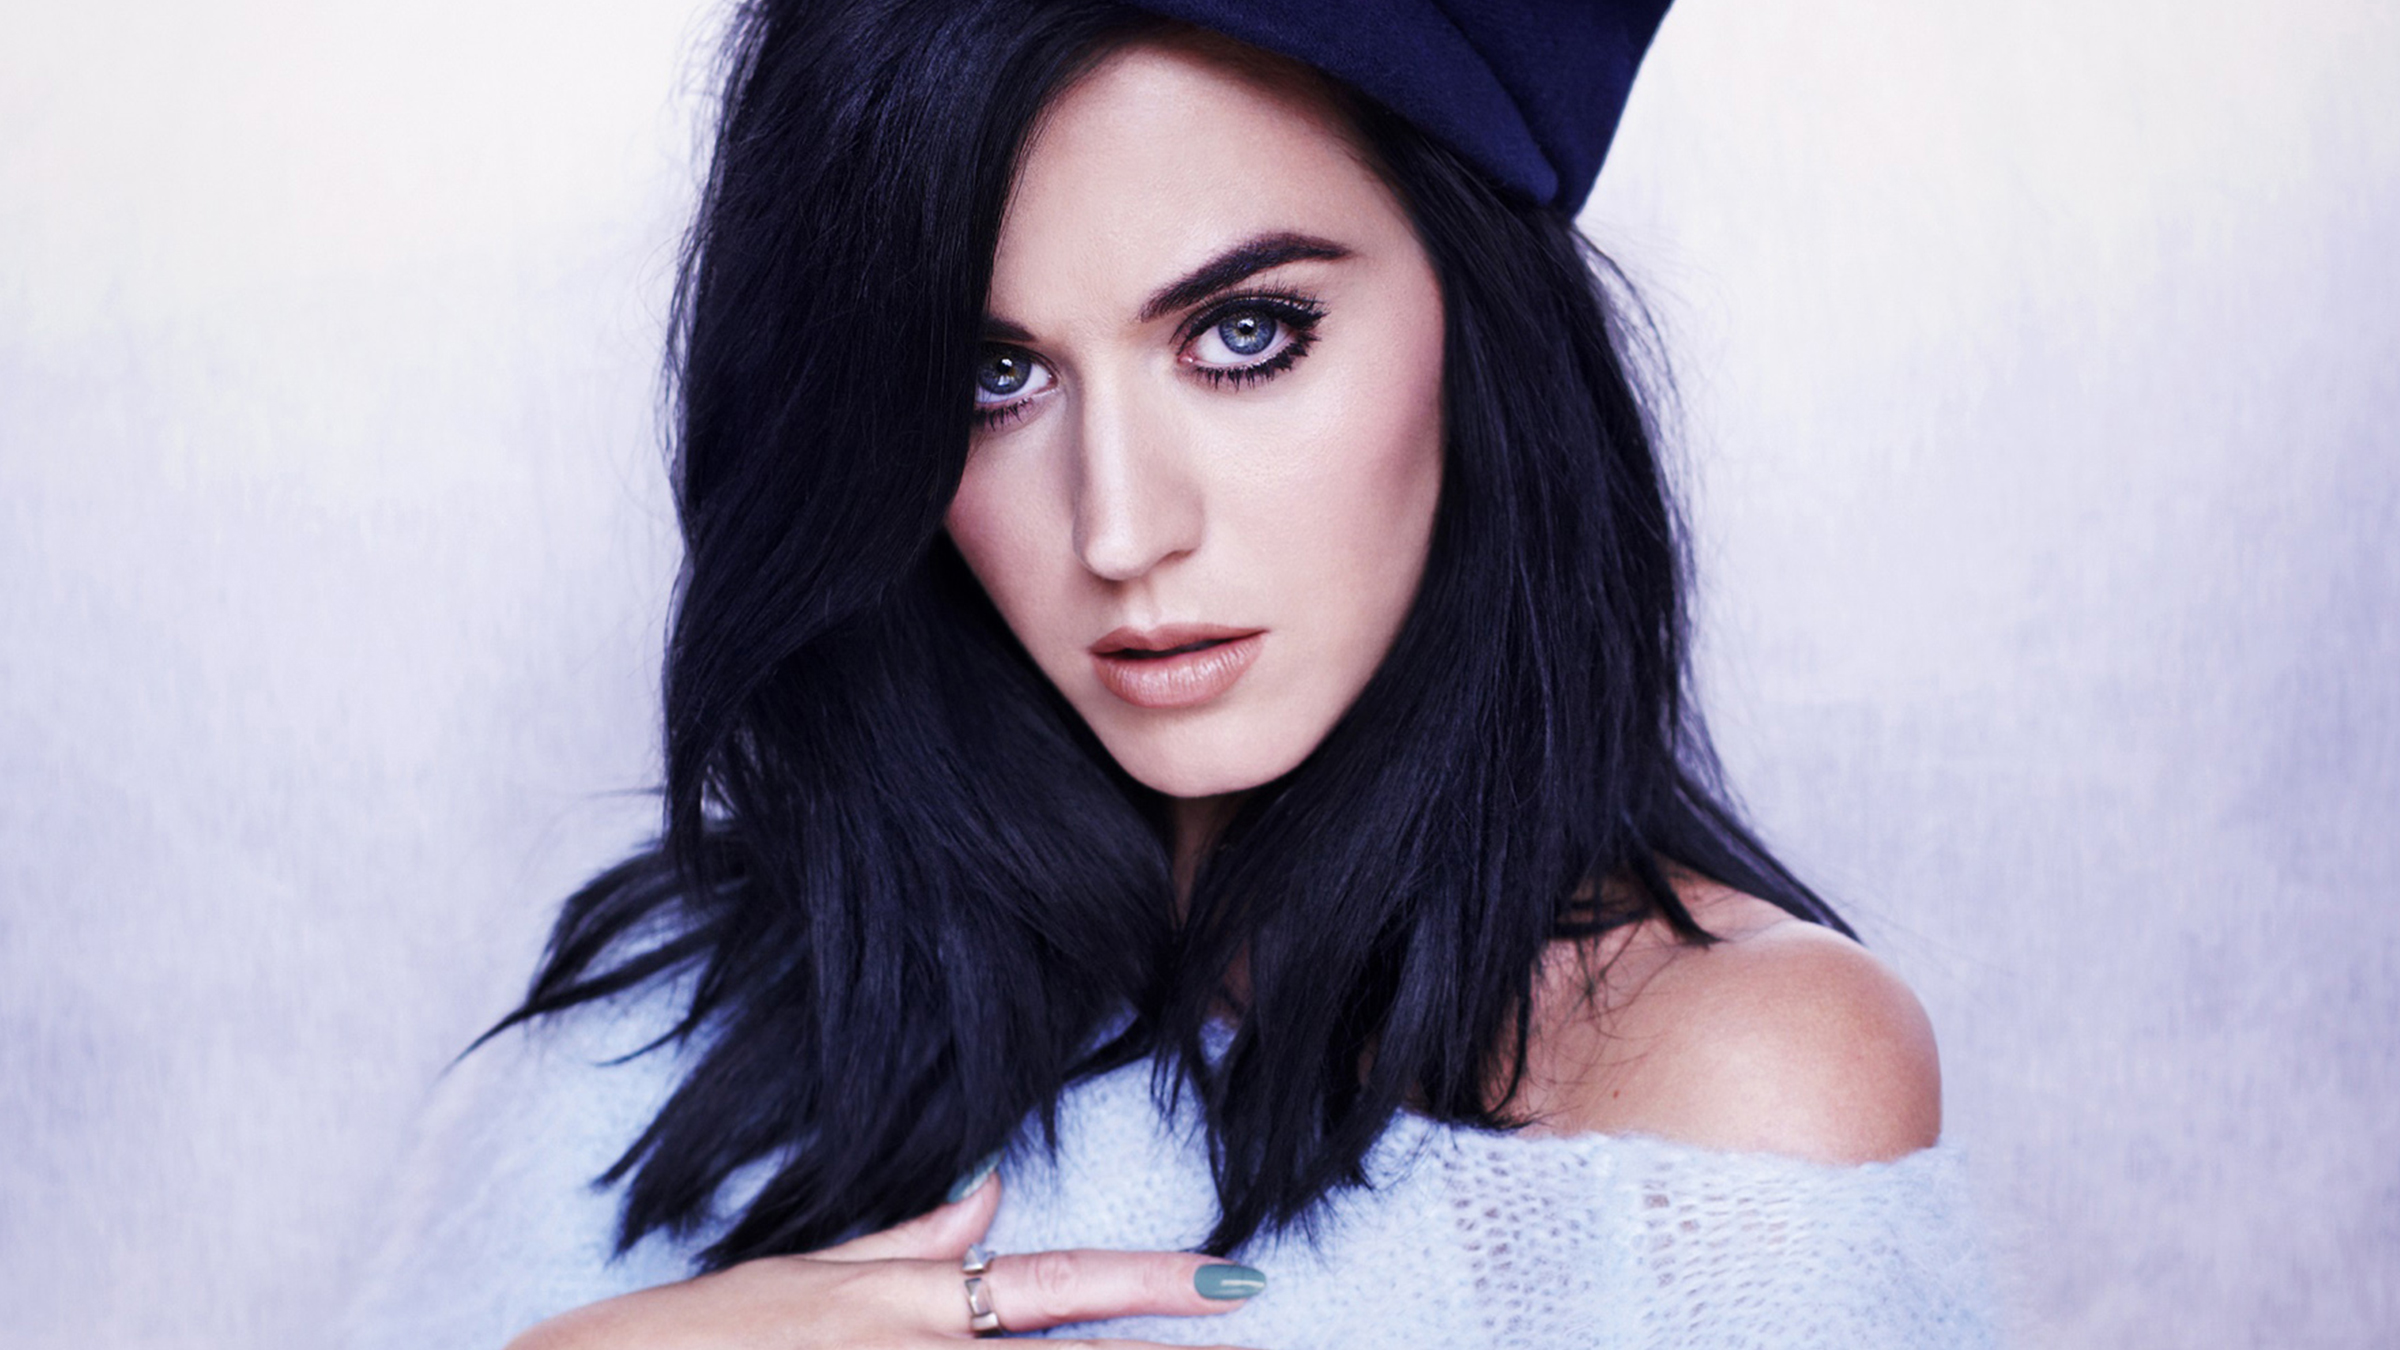 Katy perry home